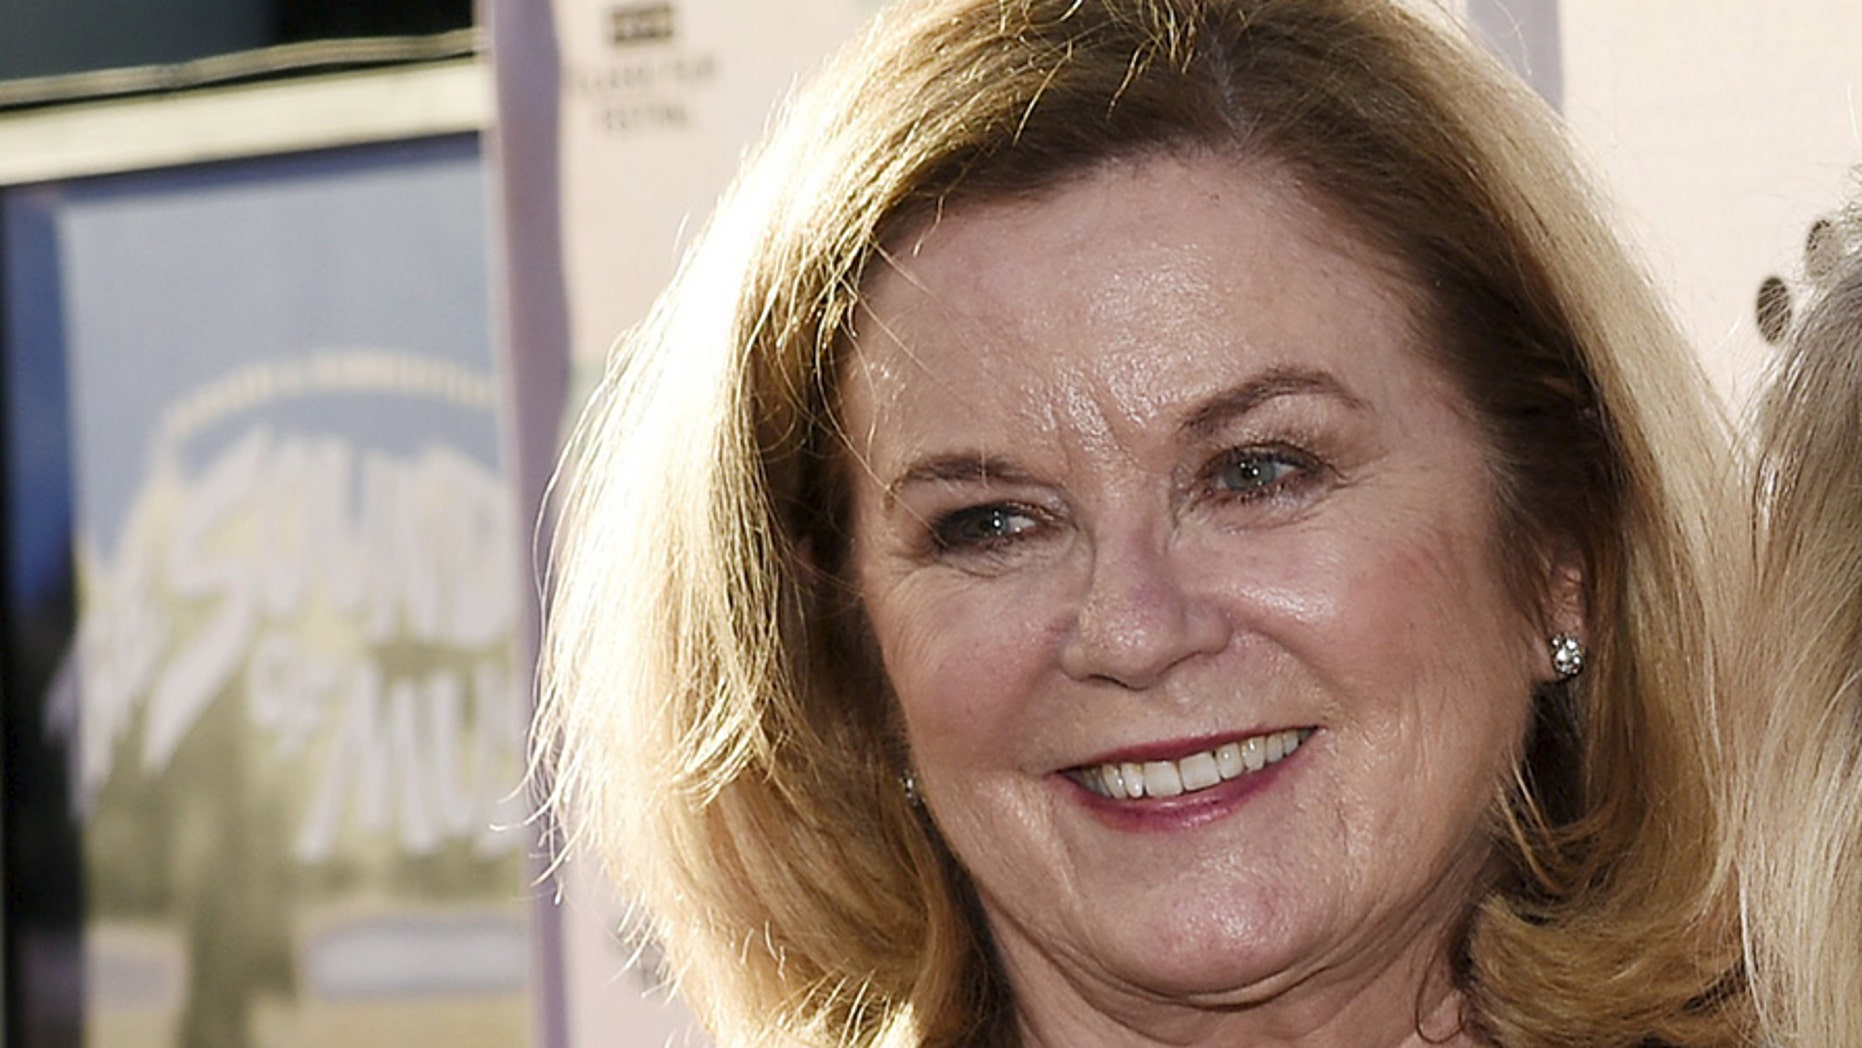 """Heather Menzies-Urich, who played Louisa von Trapp in the """"The Sound of Music,"""" is dead at 68."""